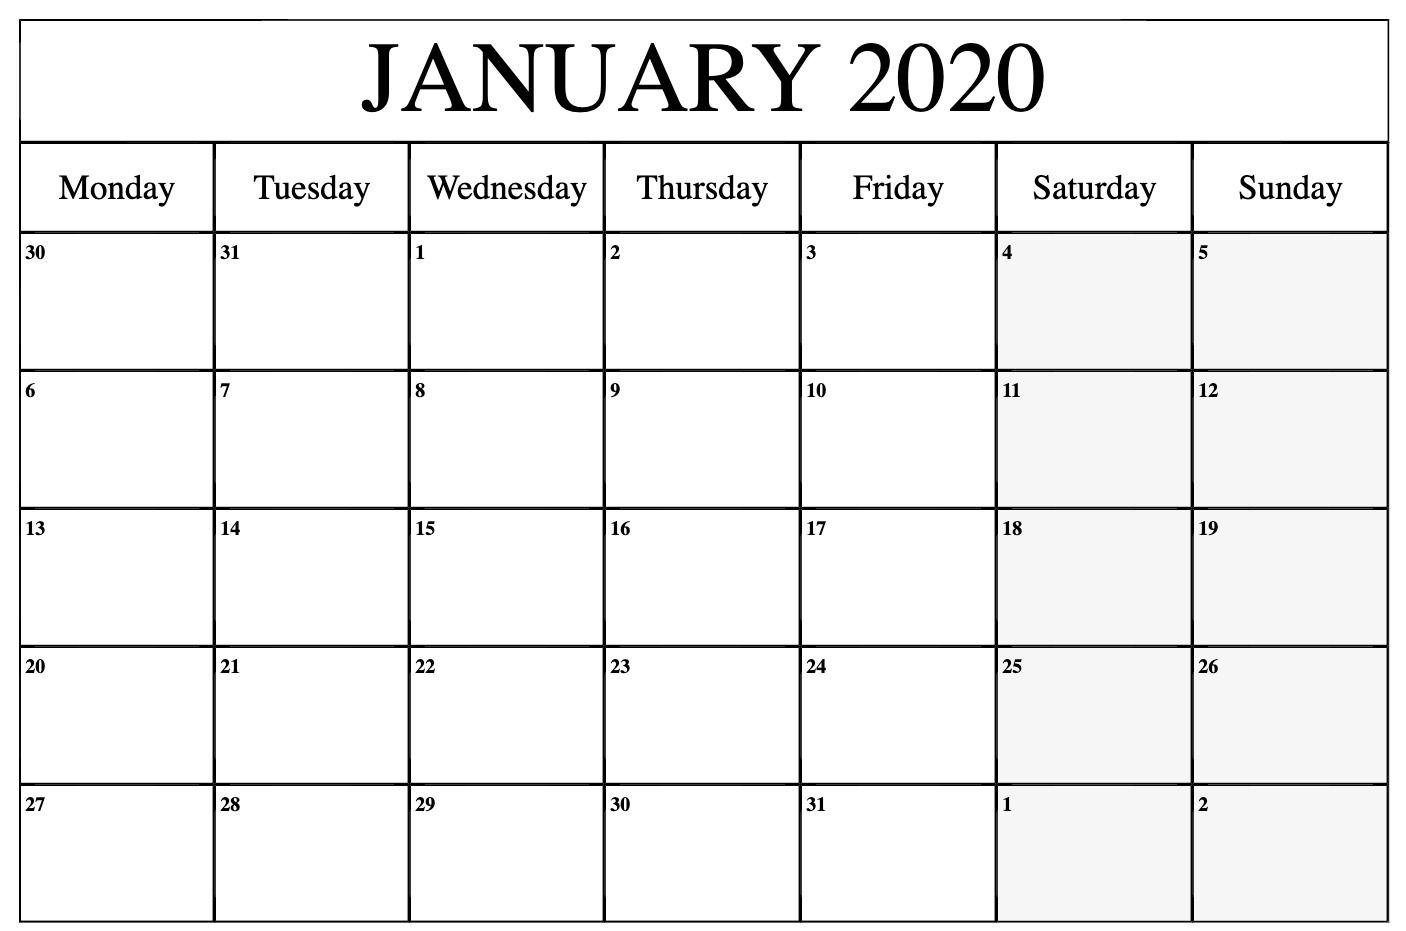 January 2020 Calendar Printable Monday | Printable Calendar